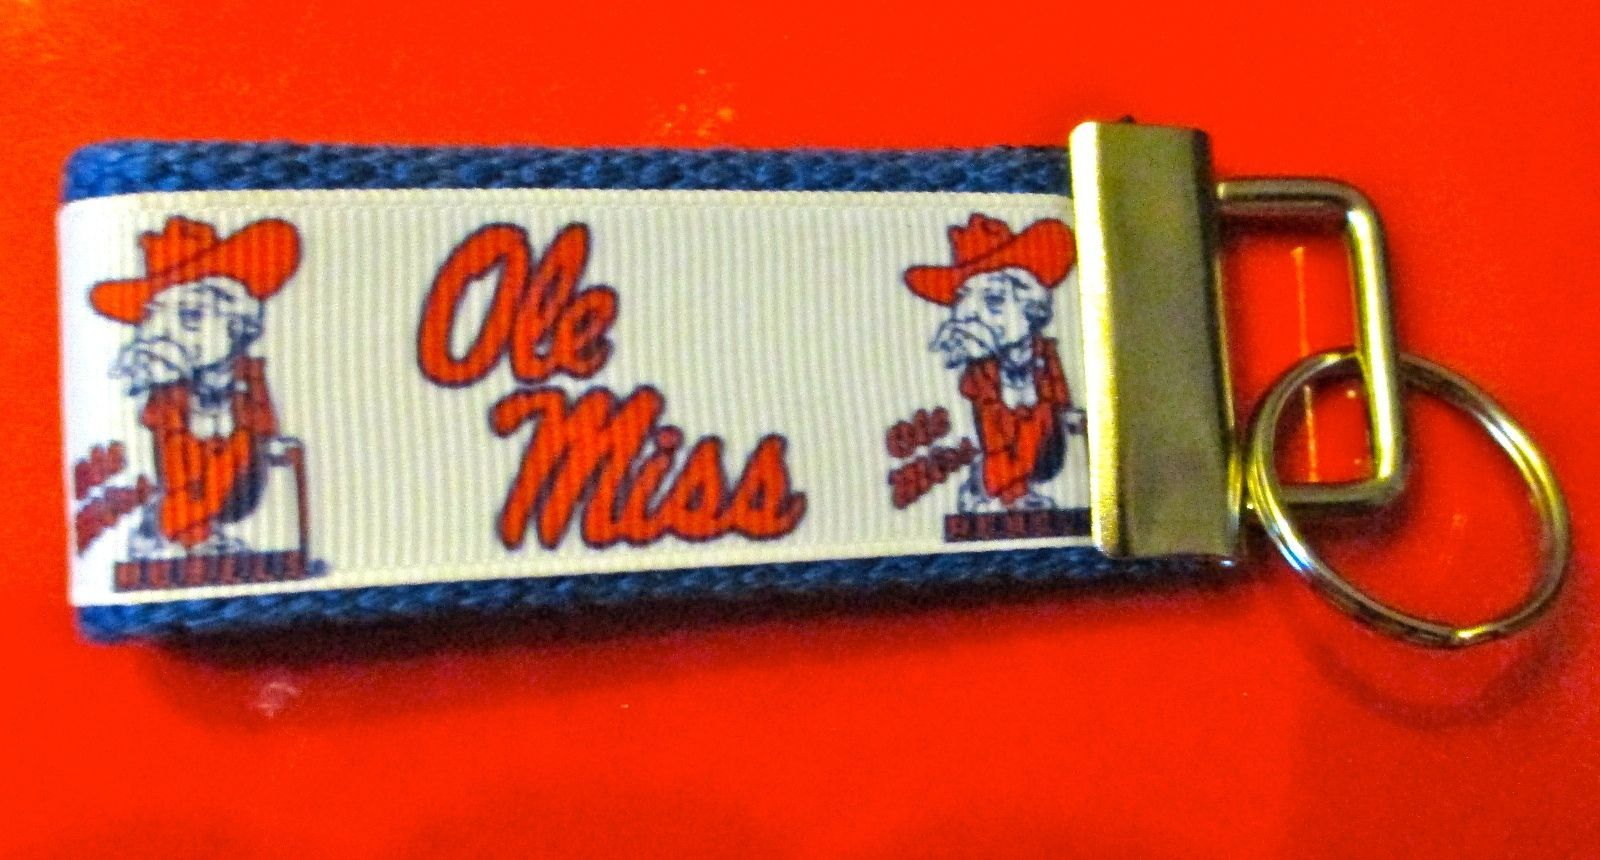 1c8e80847d4 Ole Miss Colonel Reb Key Chain